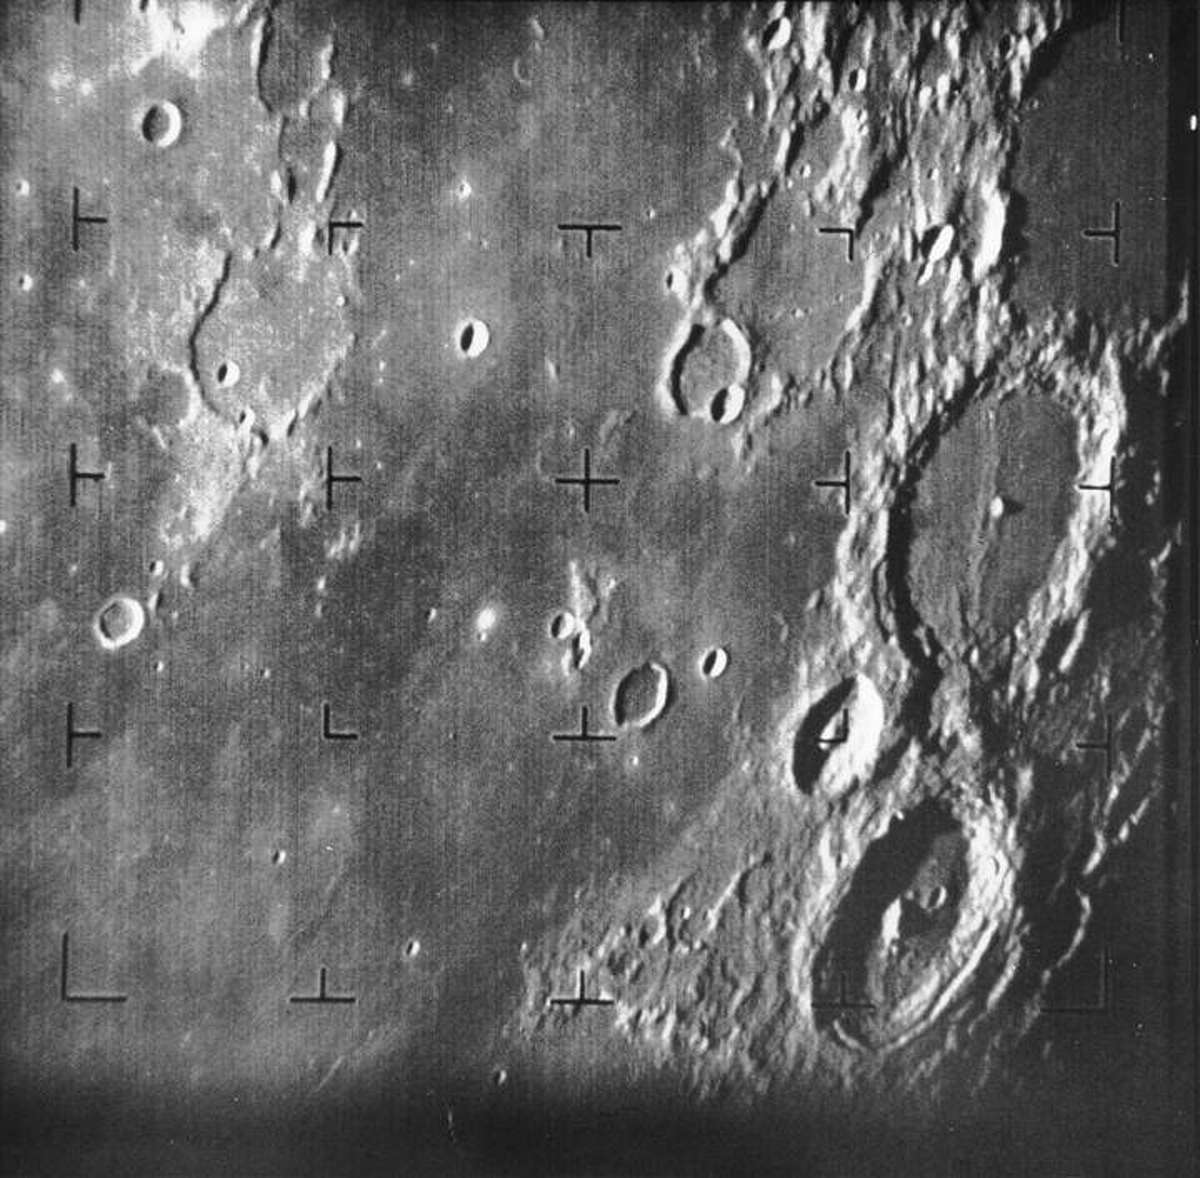 Images of famous NASA first encounters Surface of Earth's moon Date: July 31, 1964 Spacecraft: Ranger 7 Source: NASA